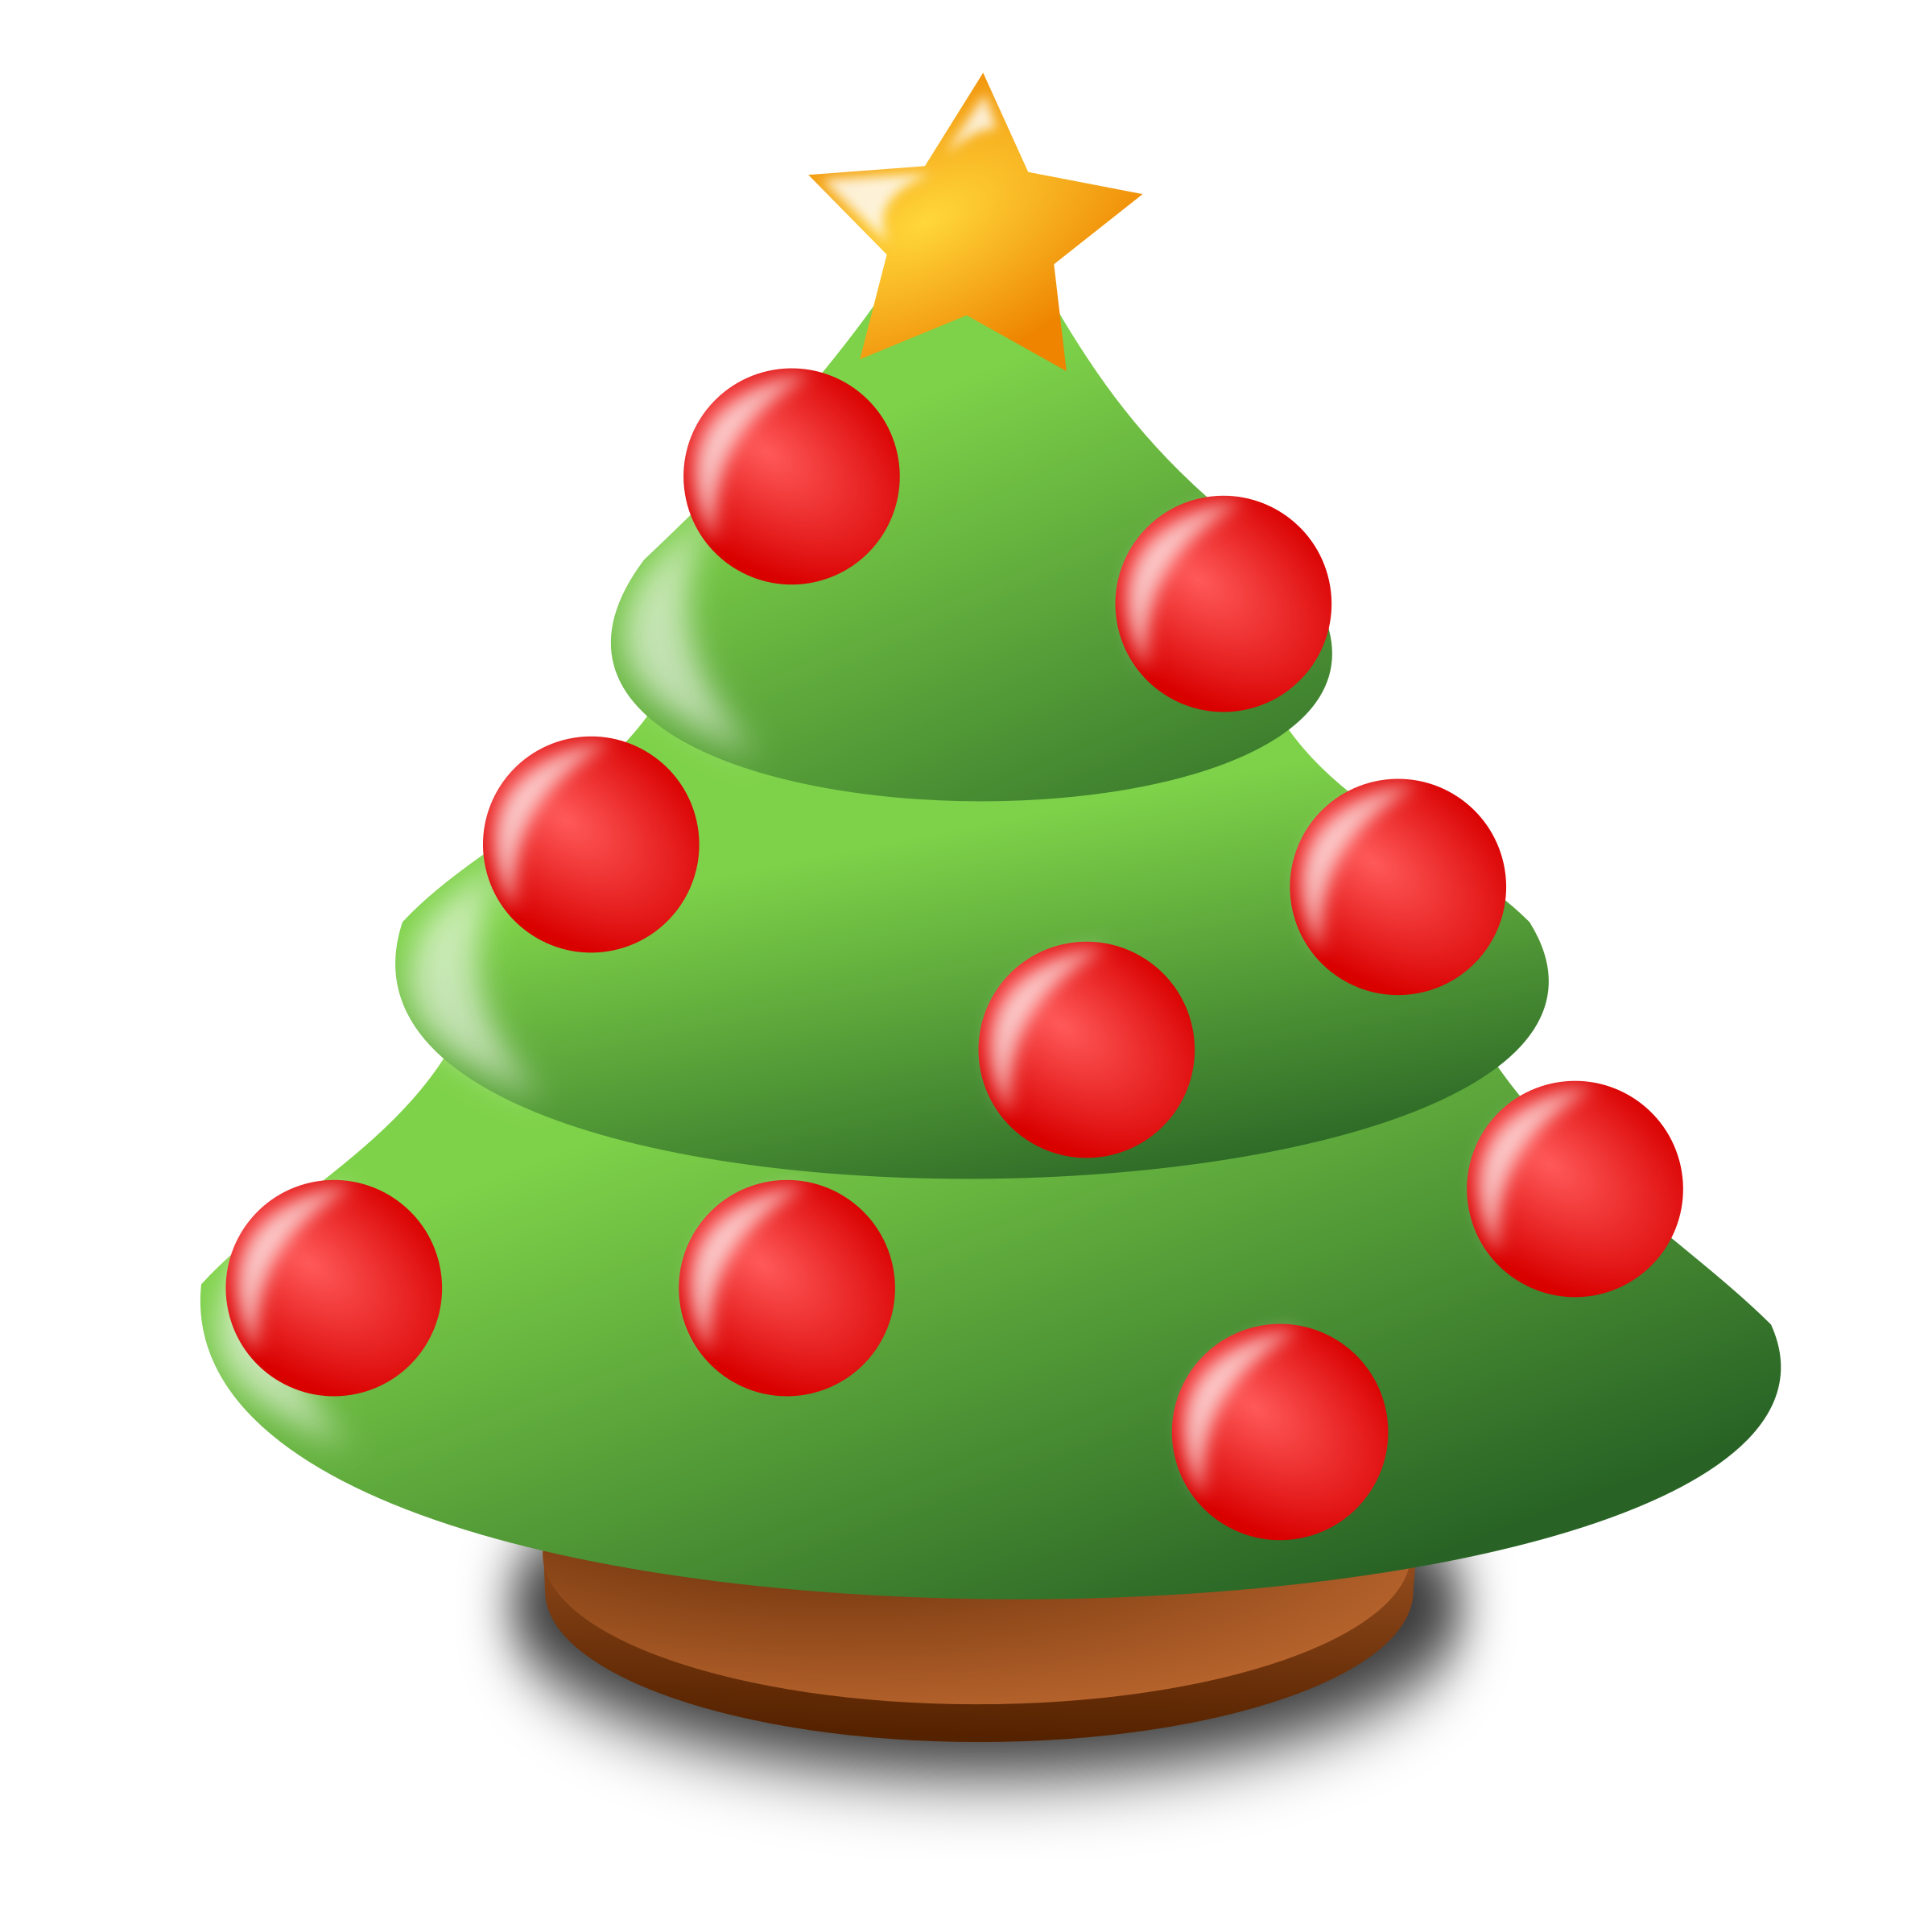 Icon big image png. Number 1 clipart christmas